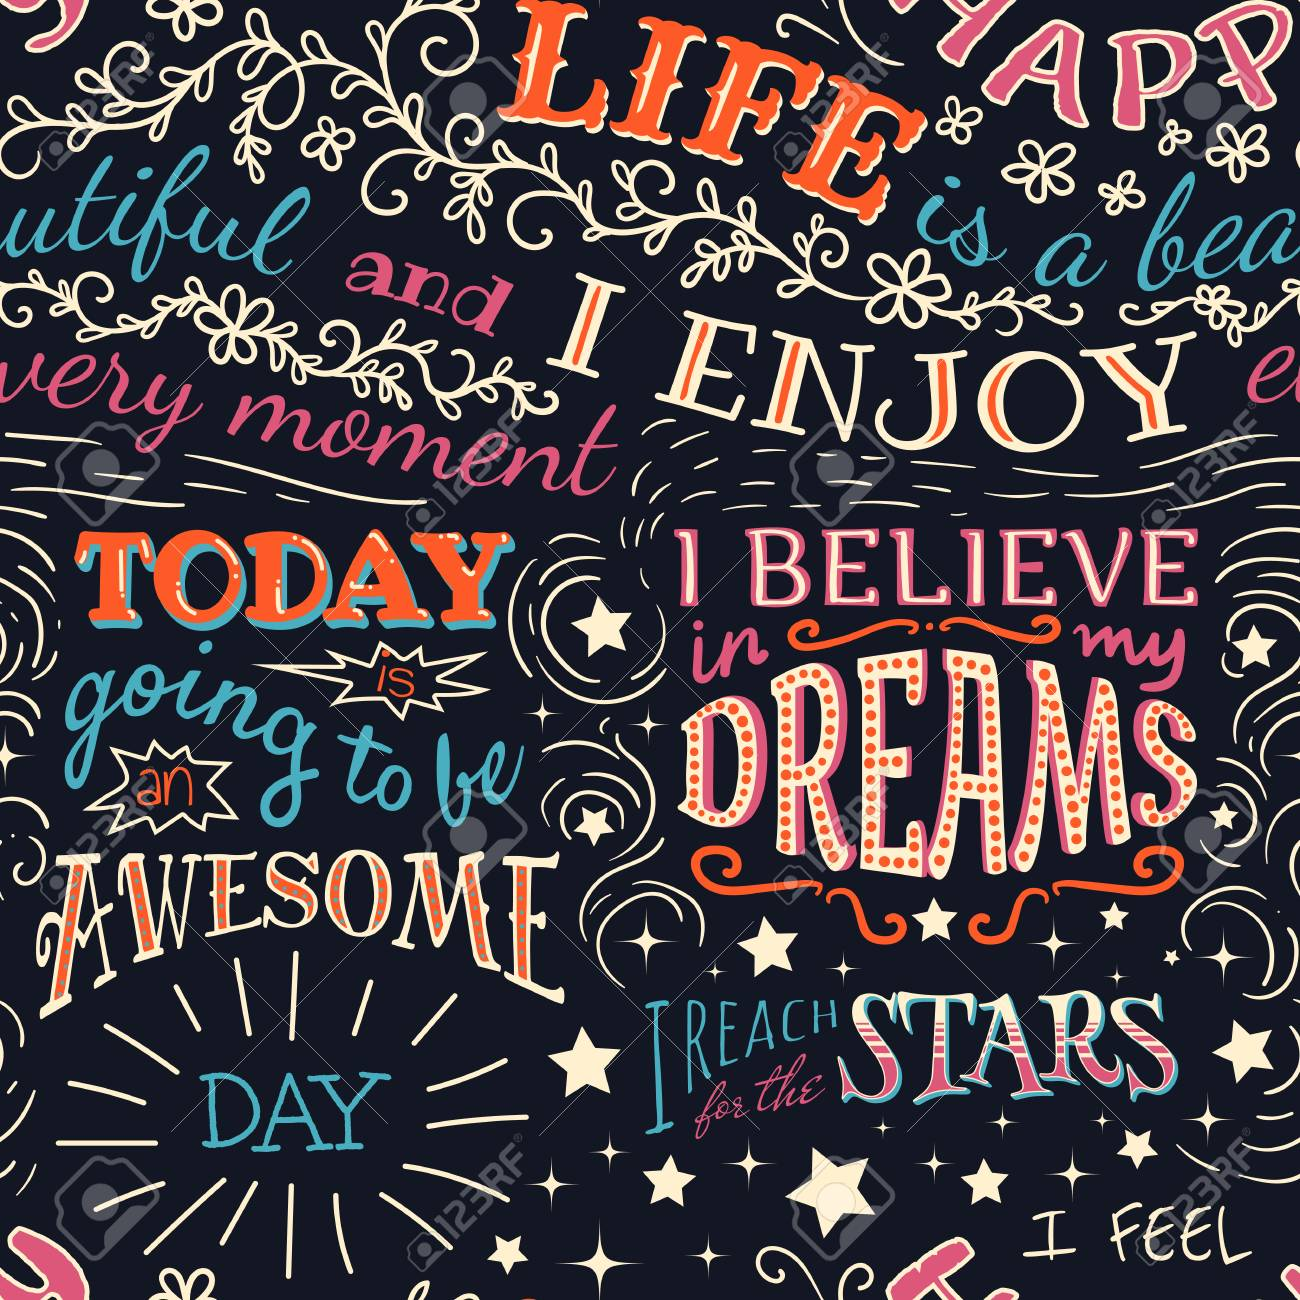 Colorful lettering with positive affirmations. Seamless pattern - 118863998